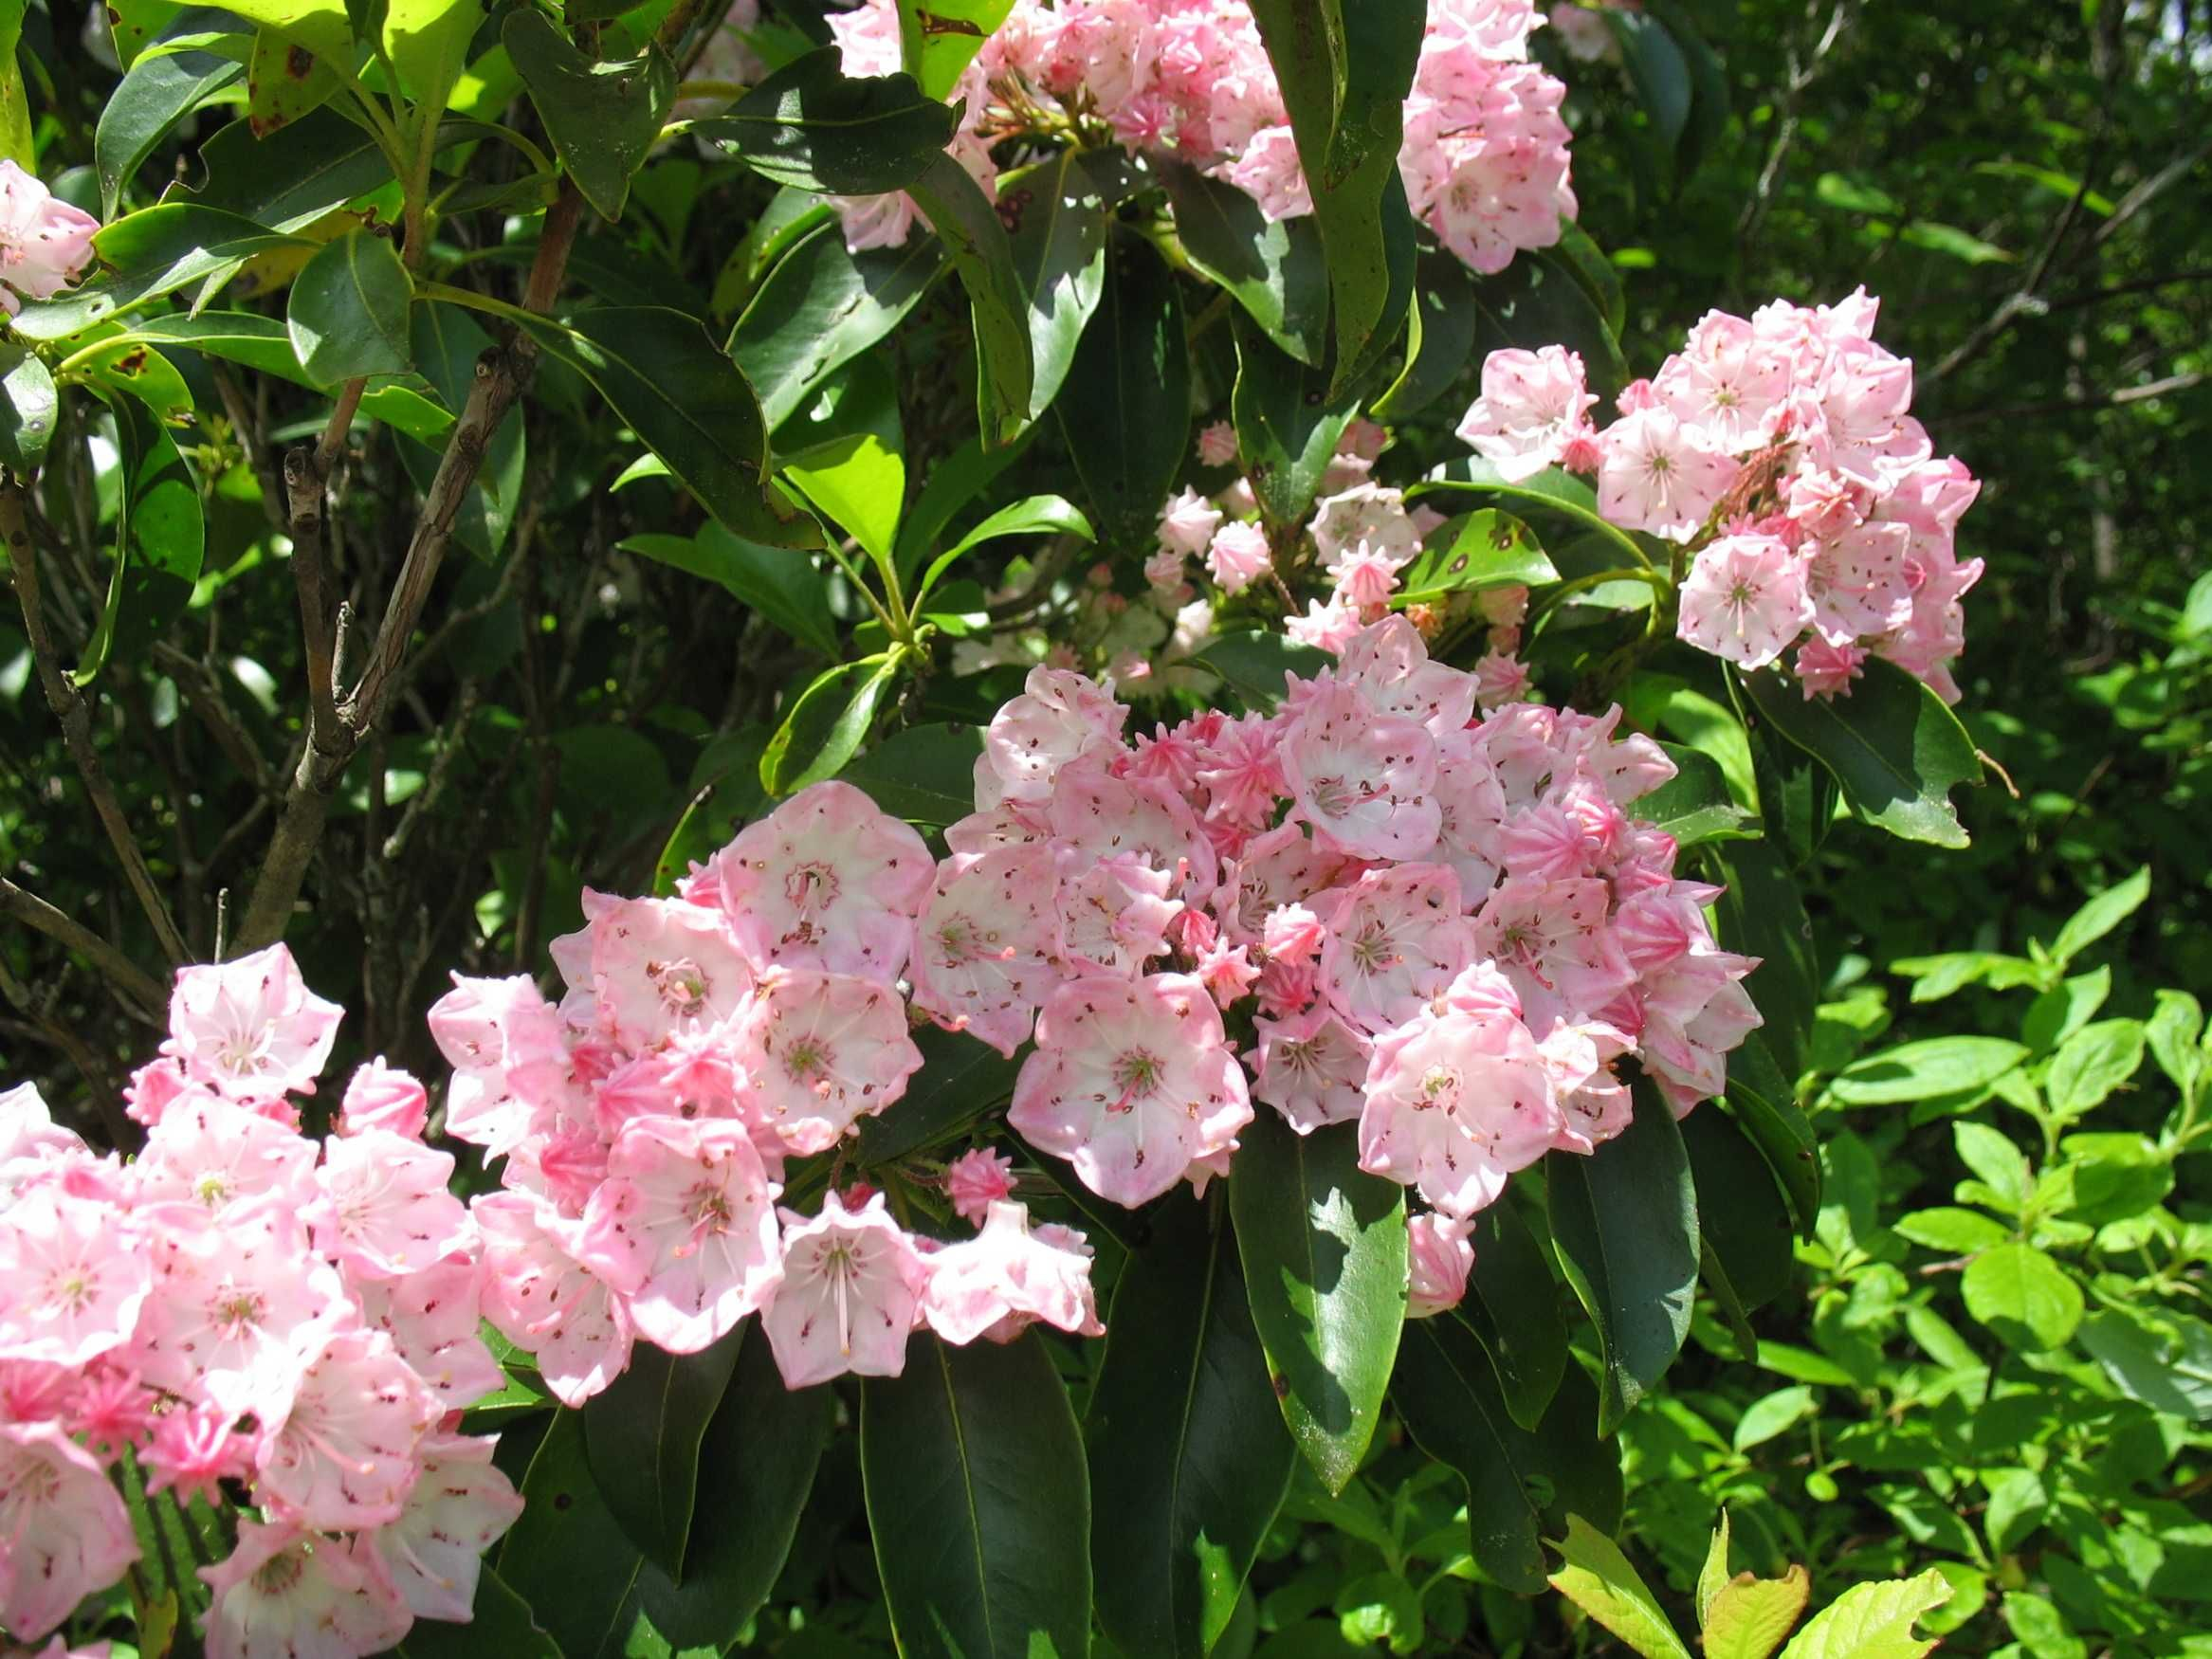 Mountain Laurel Few Plants Are More Dazzling In Full Bloom Than Kalmia Latifolia Another Mountainside Plant This One Can Laurel Plant Plants Native Plants